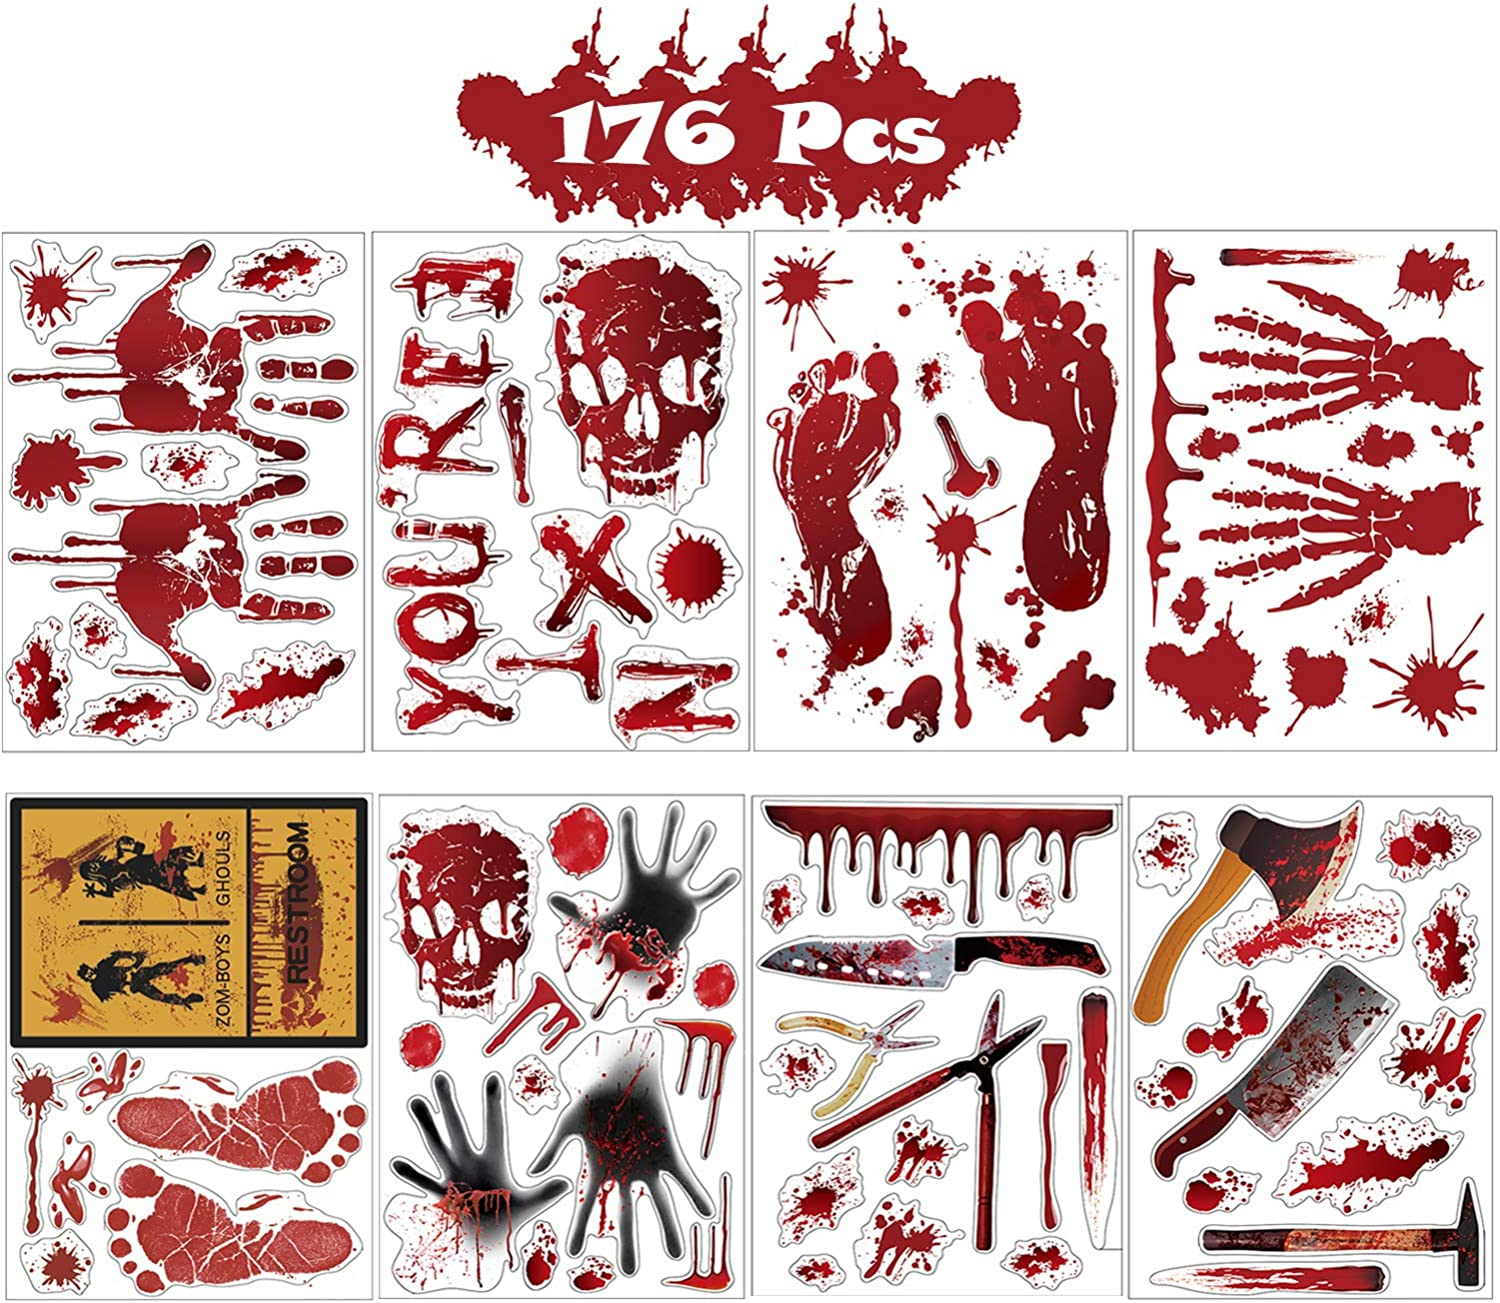 Halloween Decorations Window Stickers, Bloody Handprint Footprint Weapon Decals Floor Clings Creepy Bathroom Car Decor (176 Stickers)